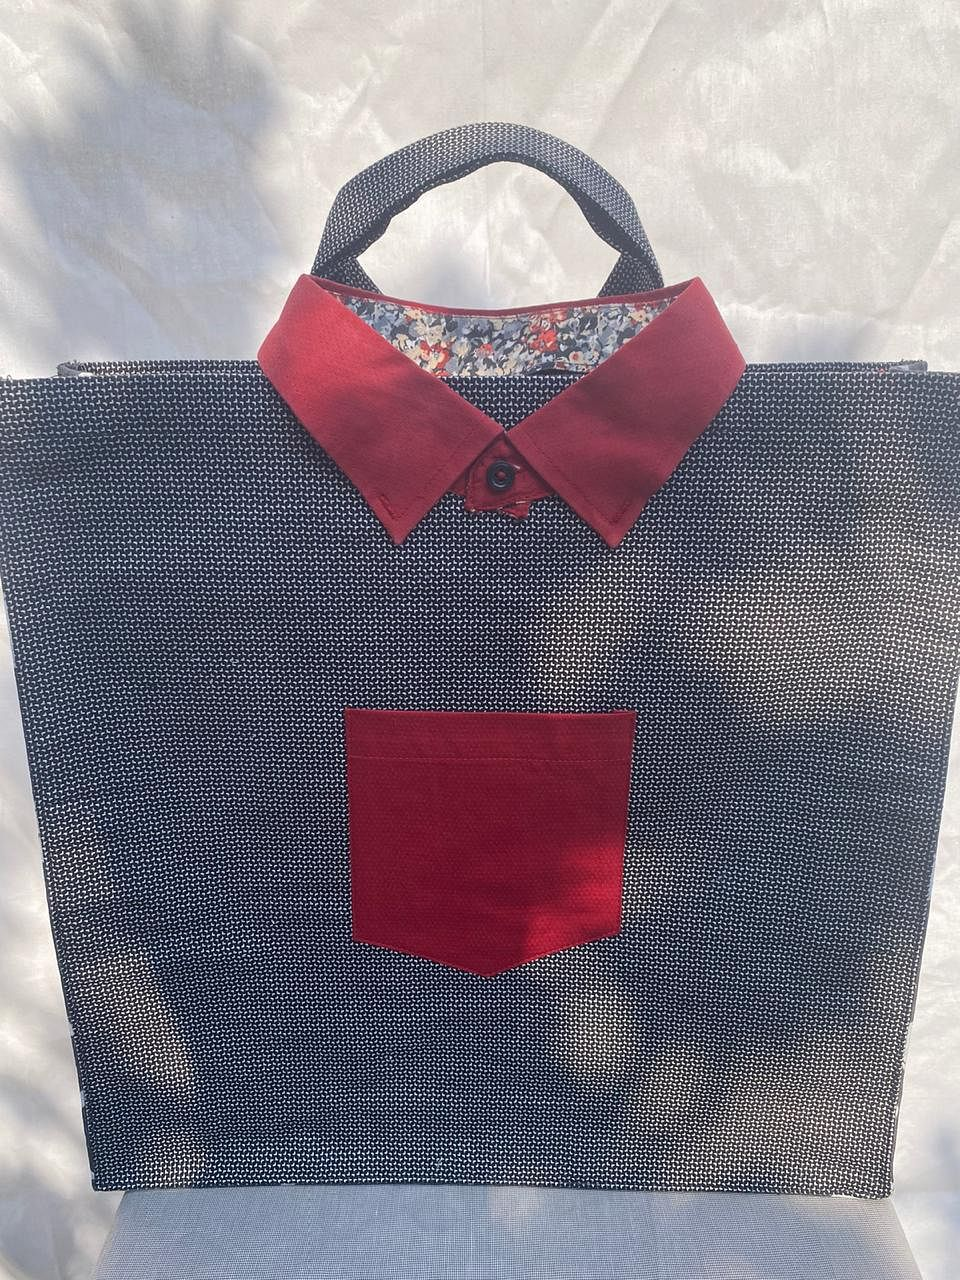 Tote bag made from shirts